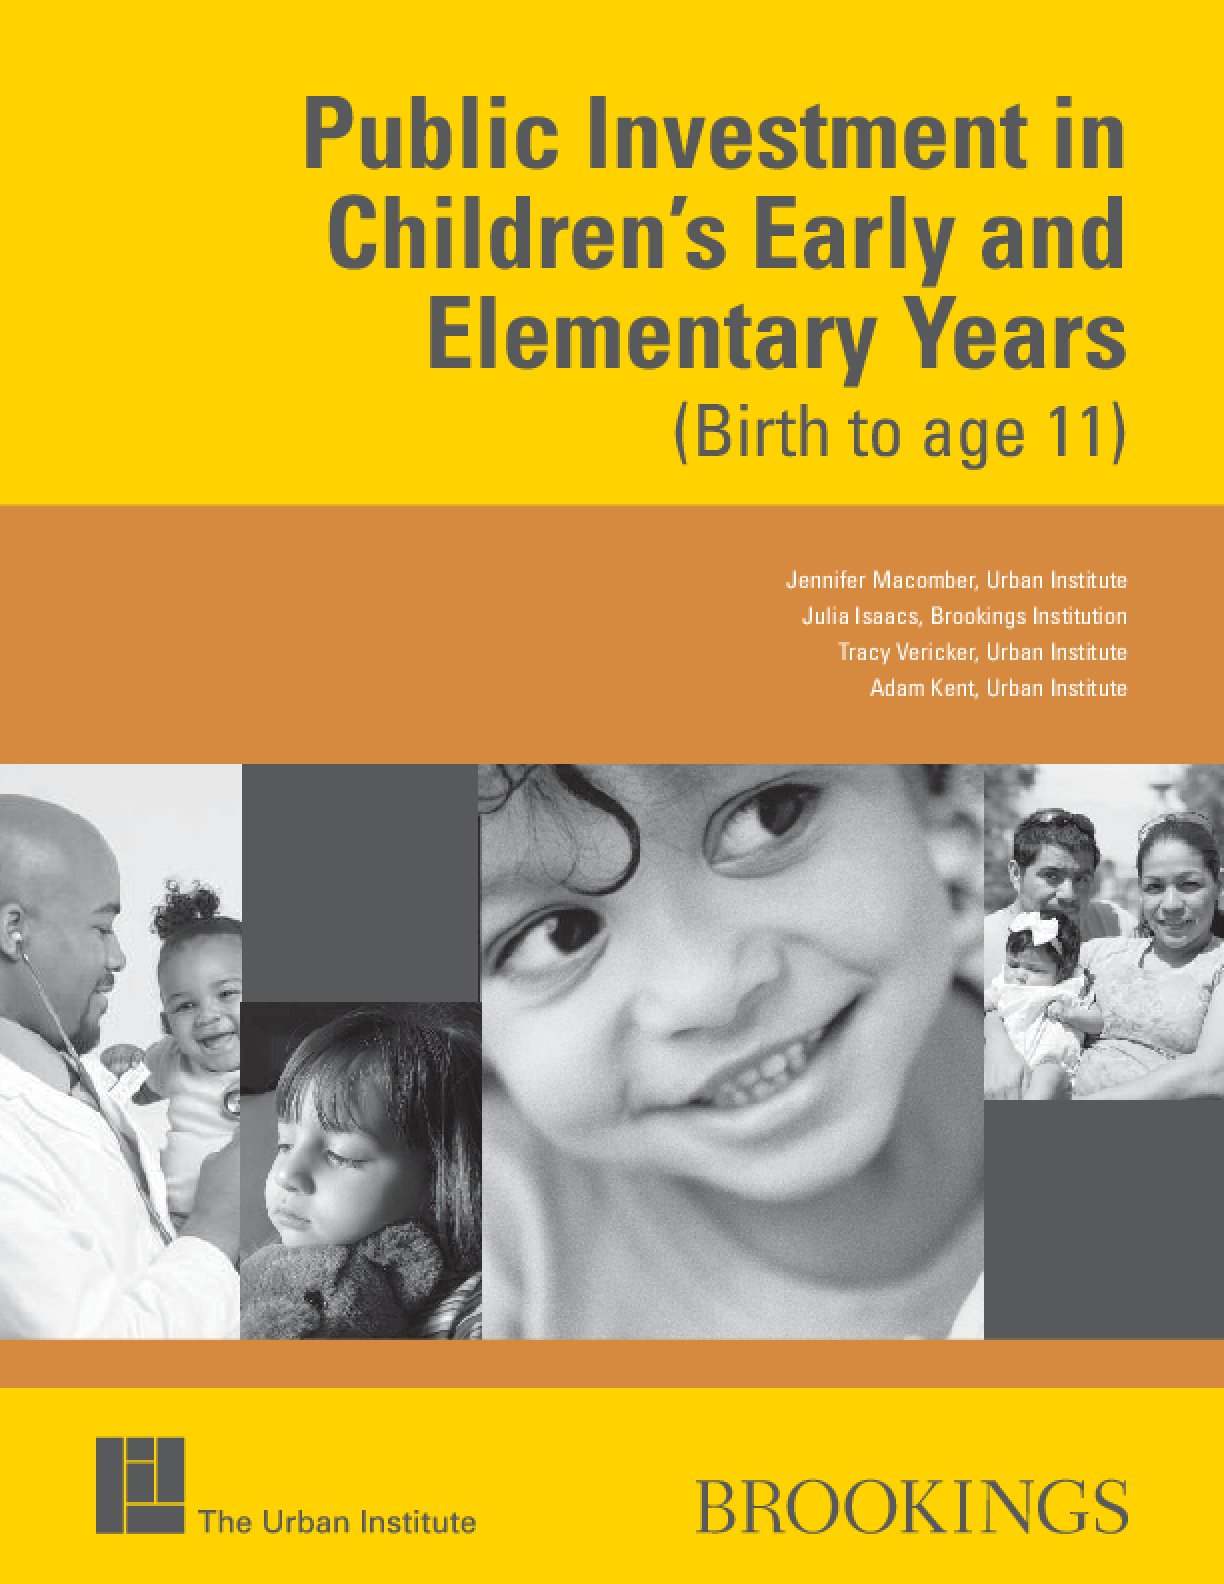 Public Investment in Children's Early and Elementary Years (Birth to Age 11)